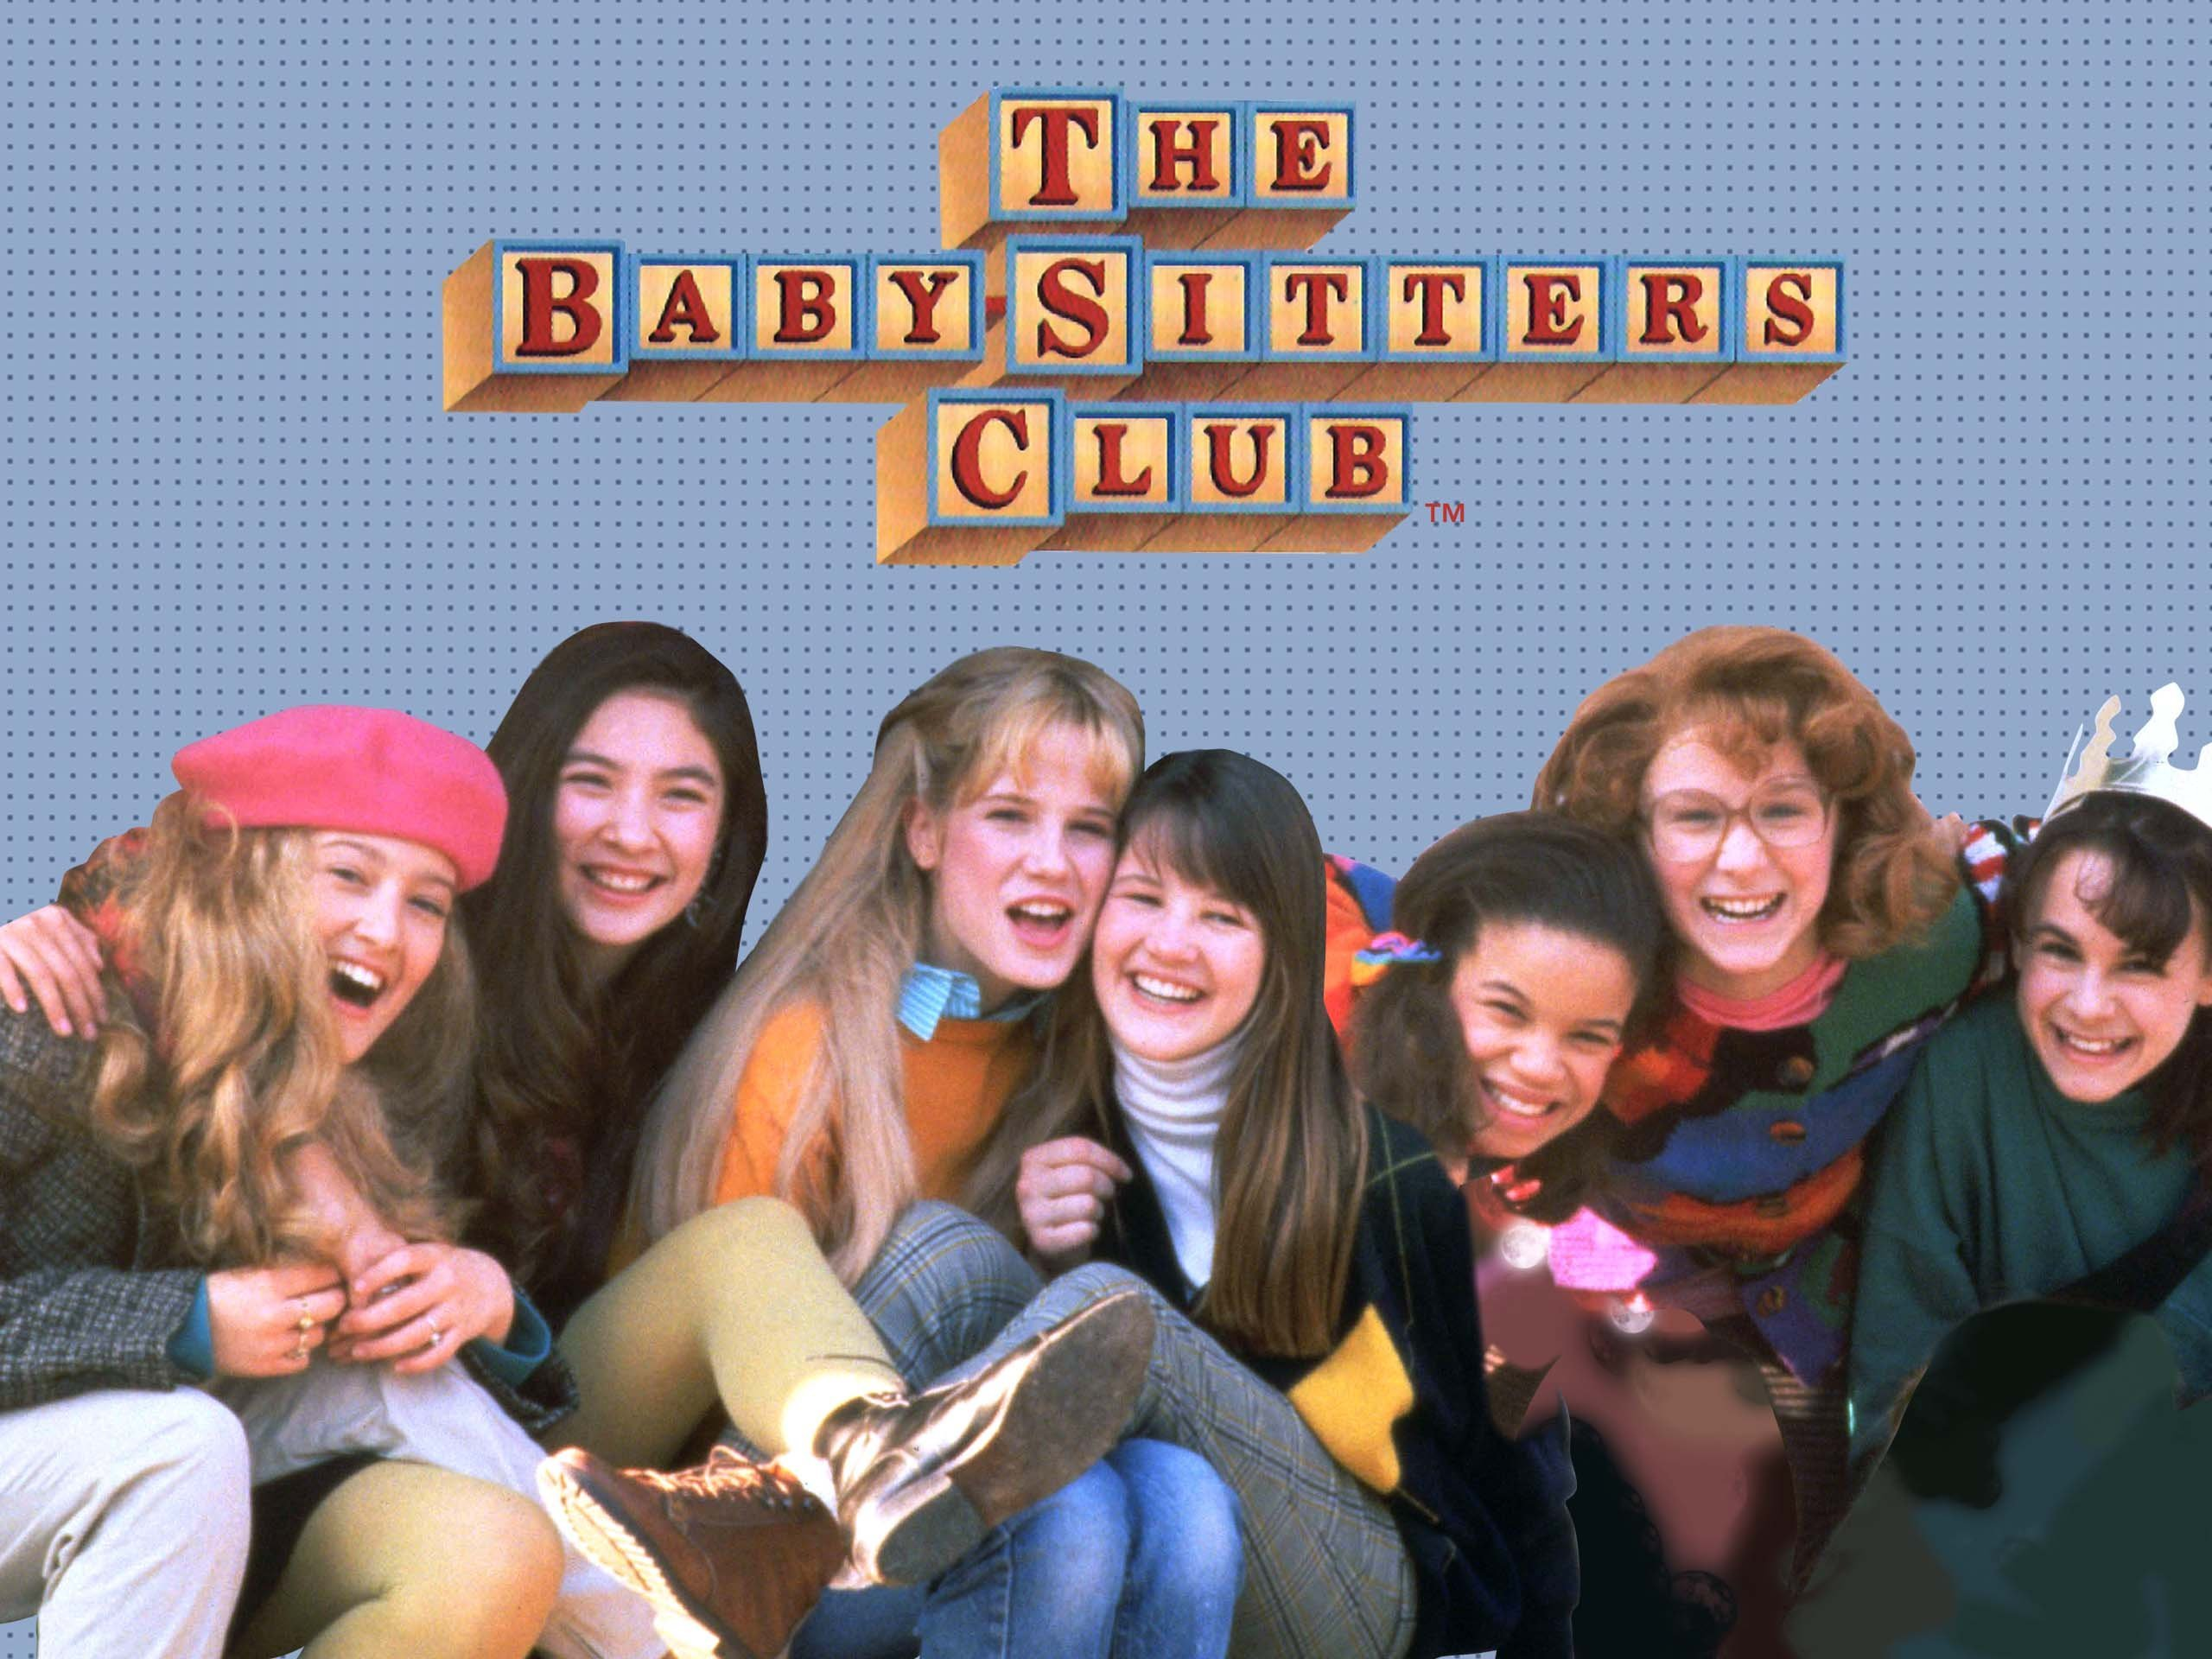 Watch The Babysitter's Club Season 1 | Prime Video